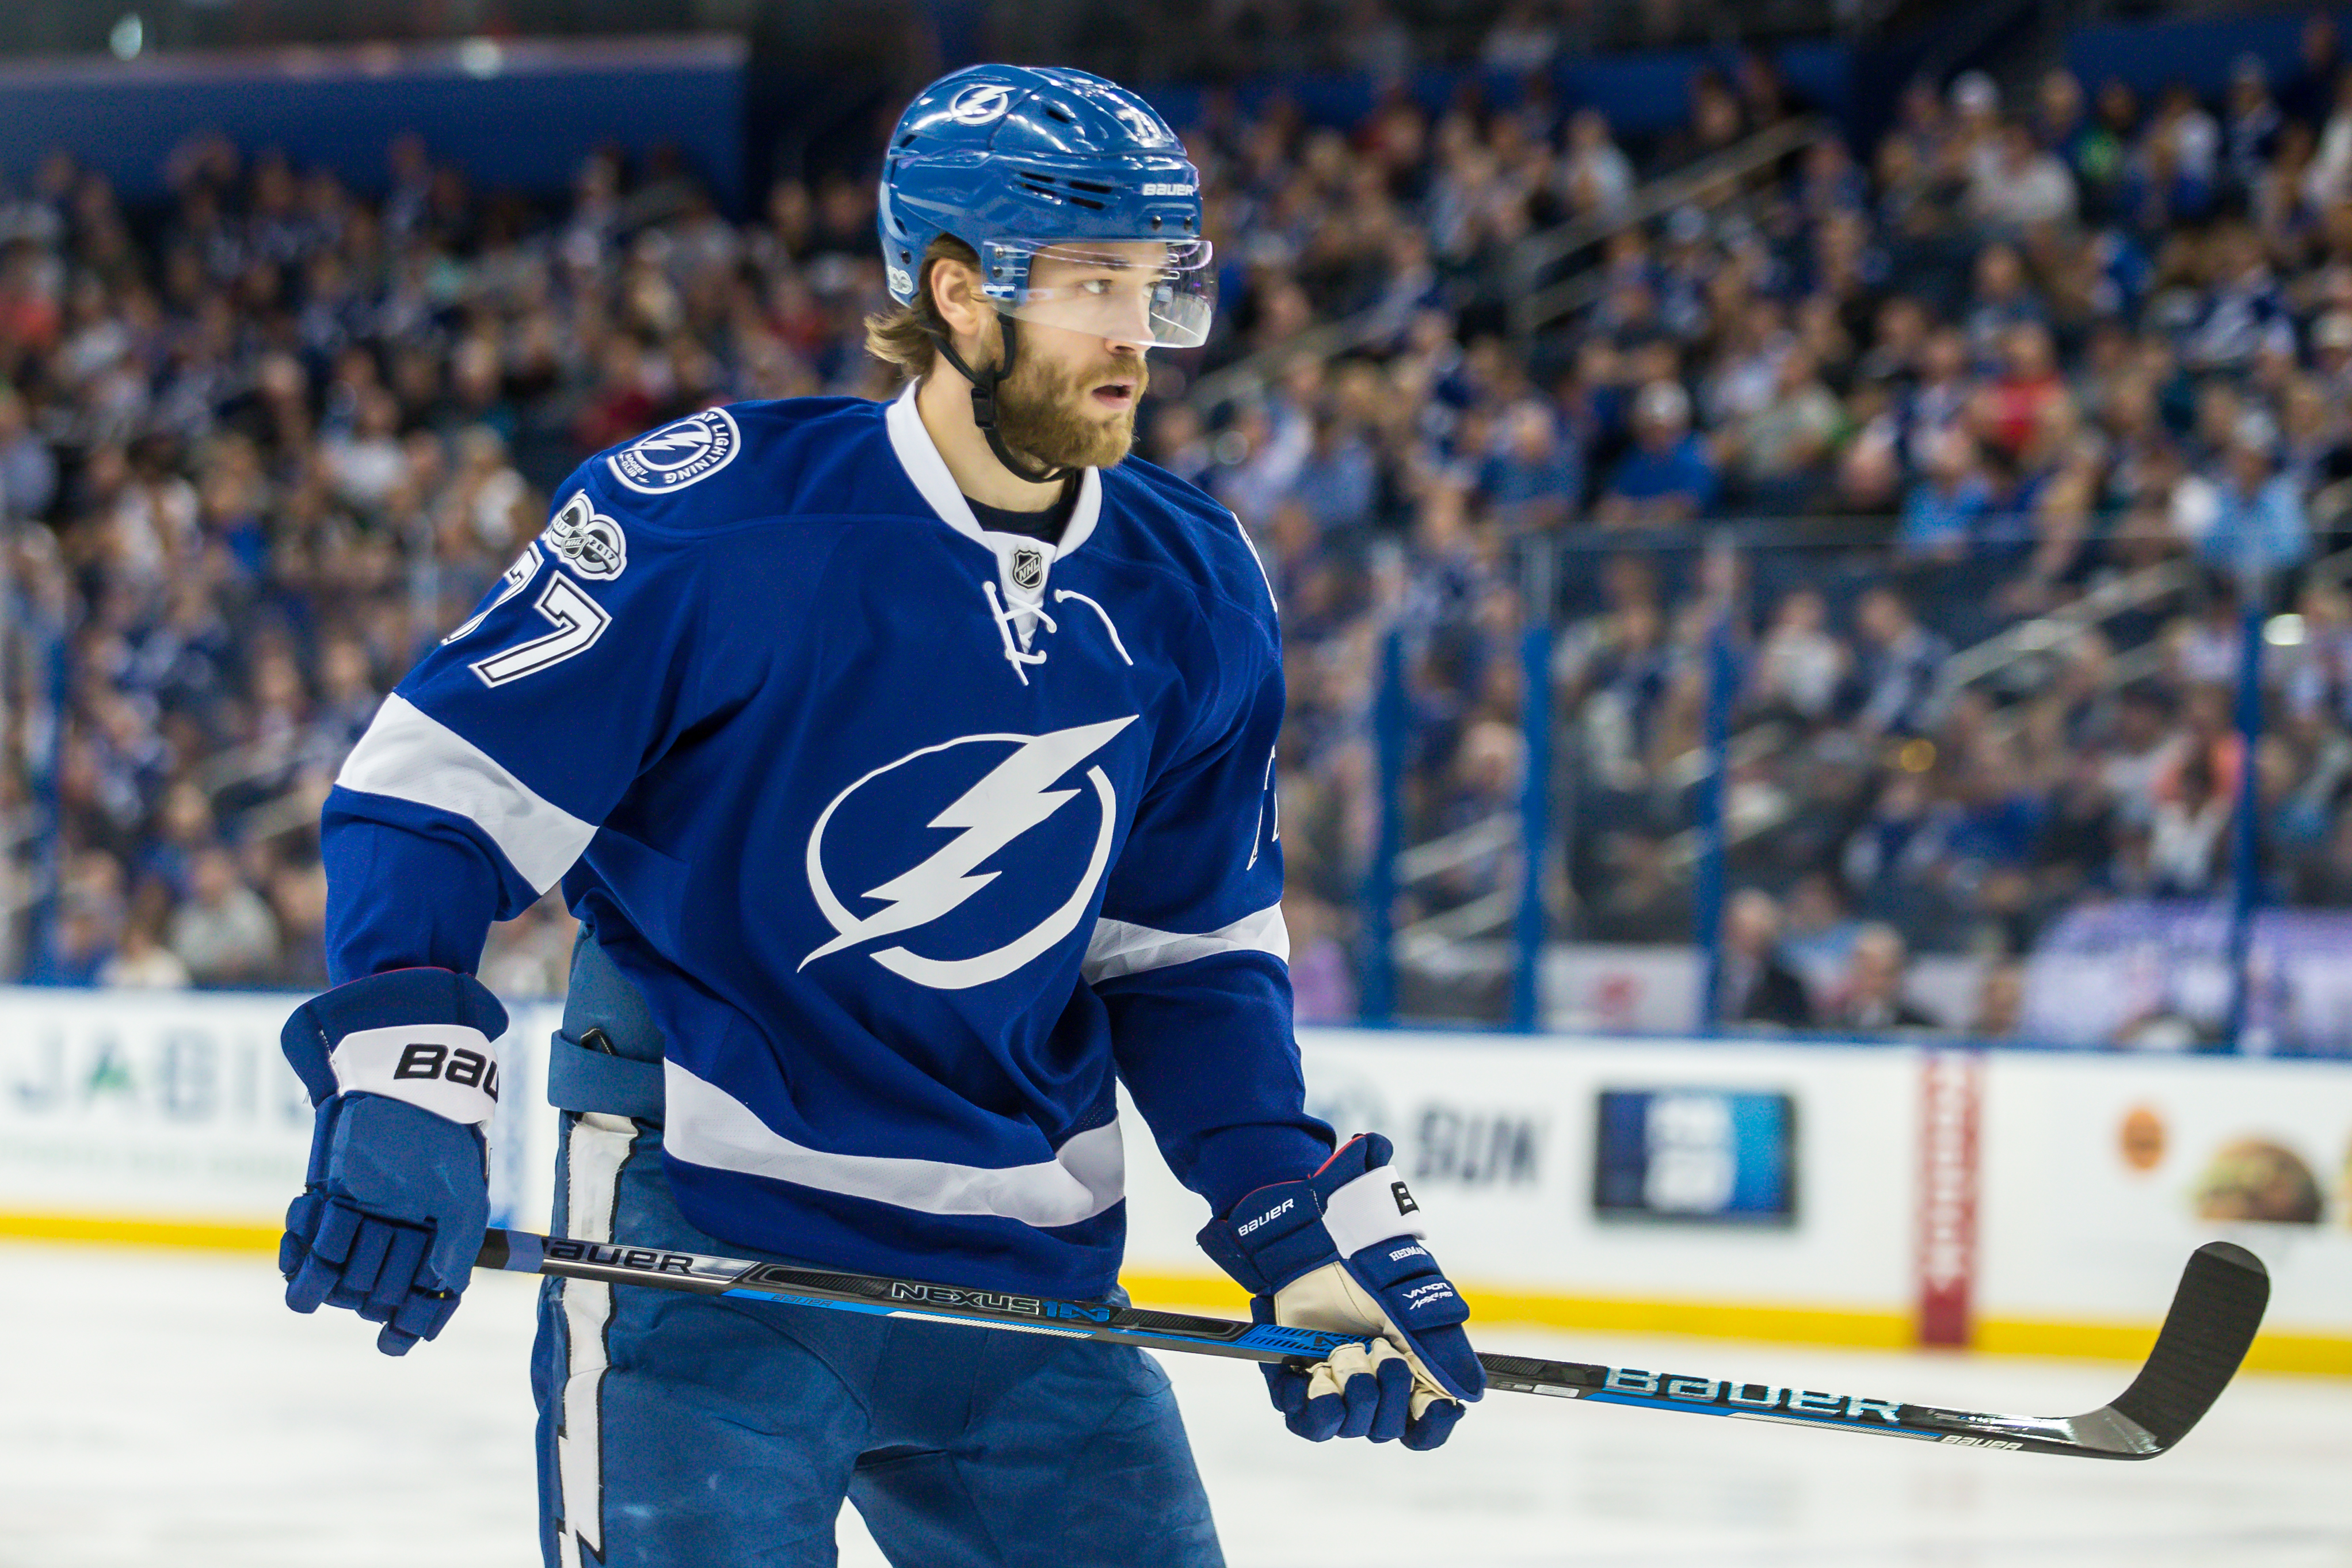 Hedman dropped the gloves to protect Bishop./TRAVIS PENDERGRASS